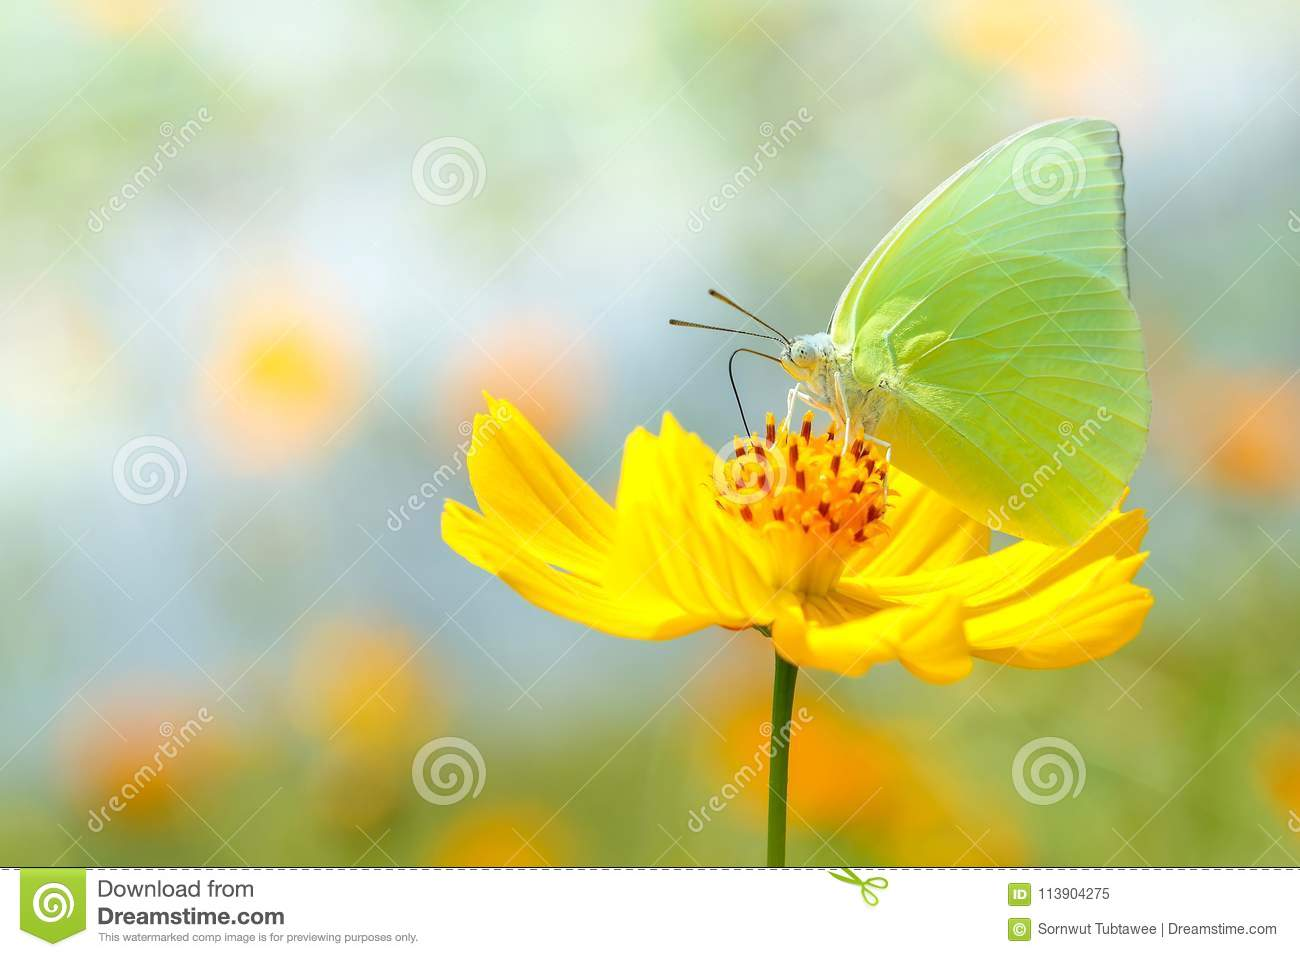 Beautiful butterfly on yellow flower Background blur.